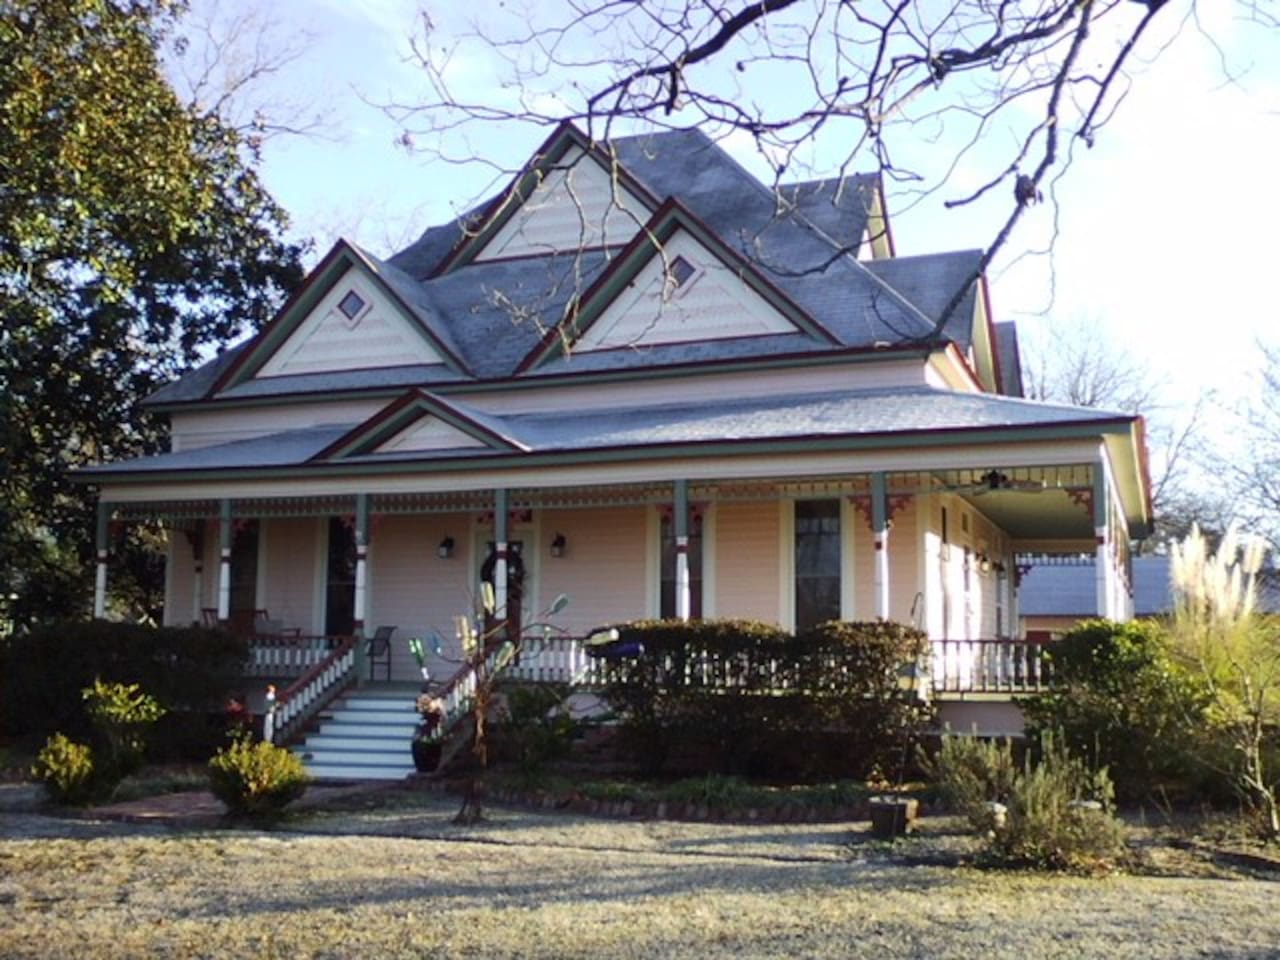 The Barwick-Dudley House, a 130 year old Folk Victorian listed on the National Register of Historic Places.